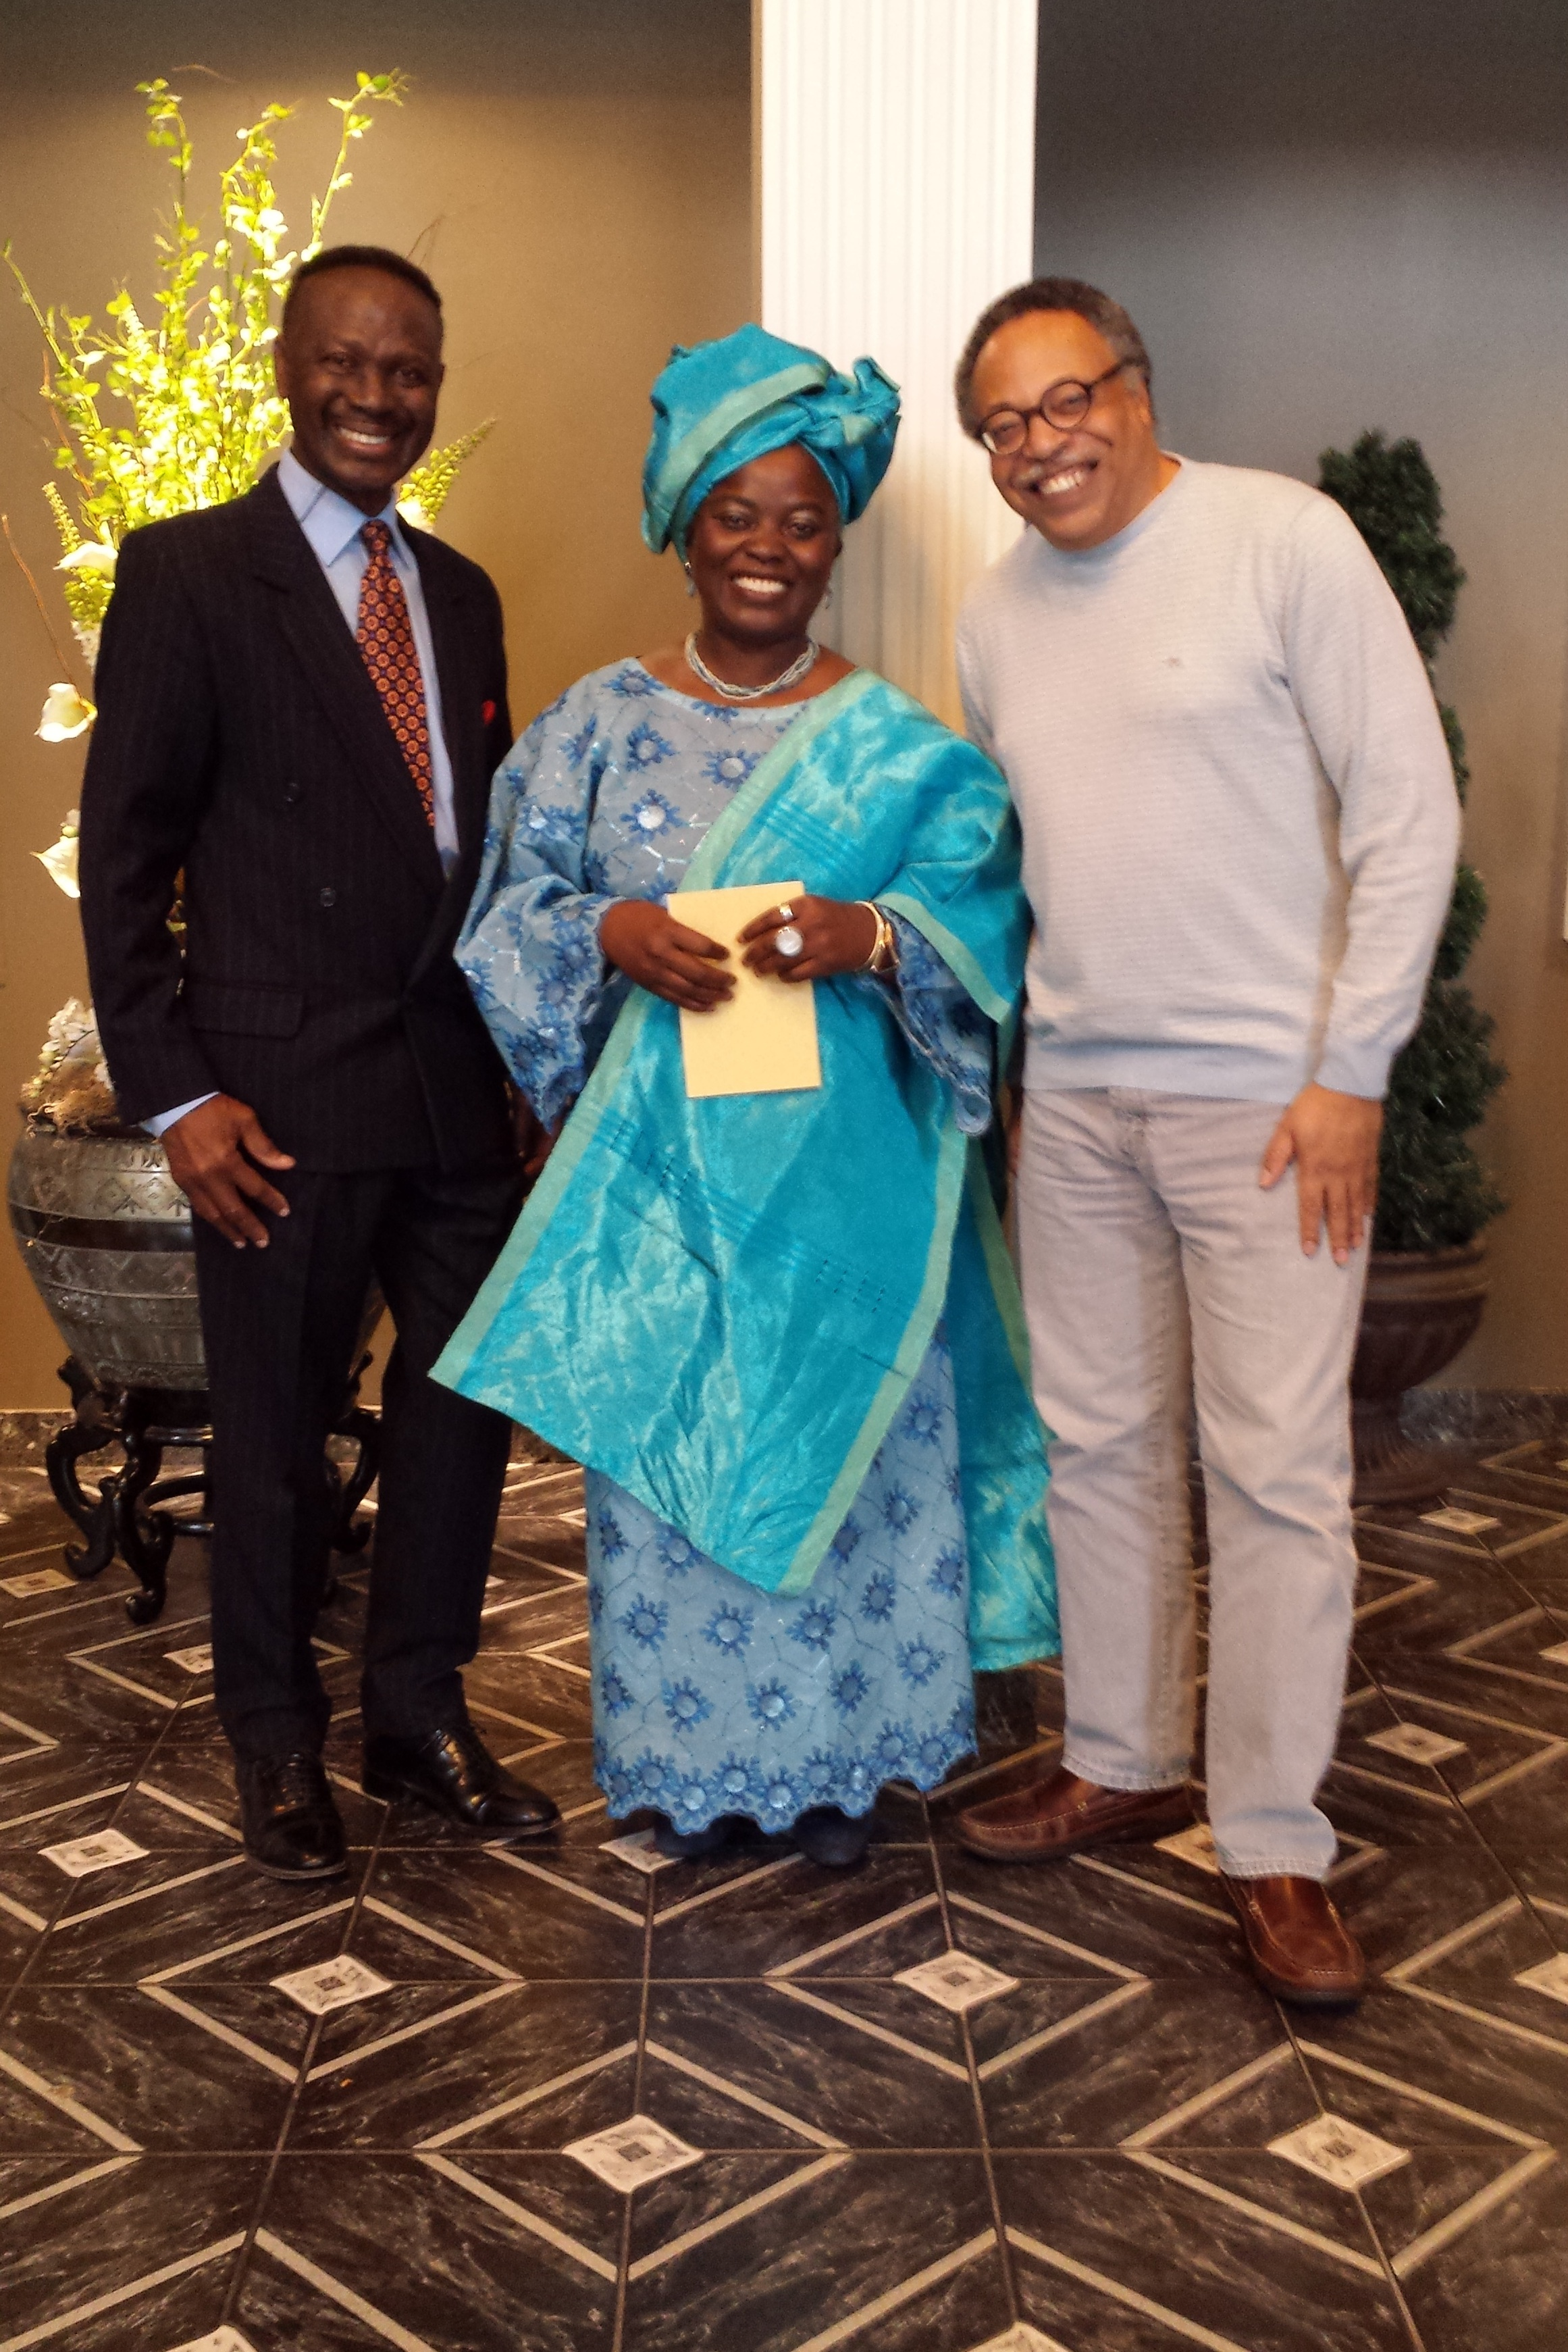 With Jose Aggrey and poet Lola Amope, Ottawa Antiquarian Book Festival, 2018.